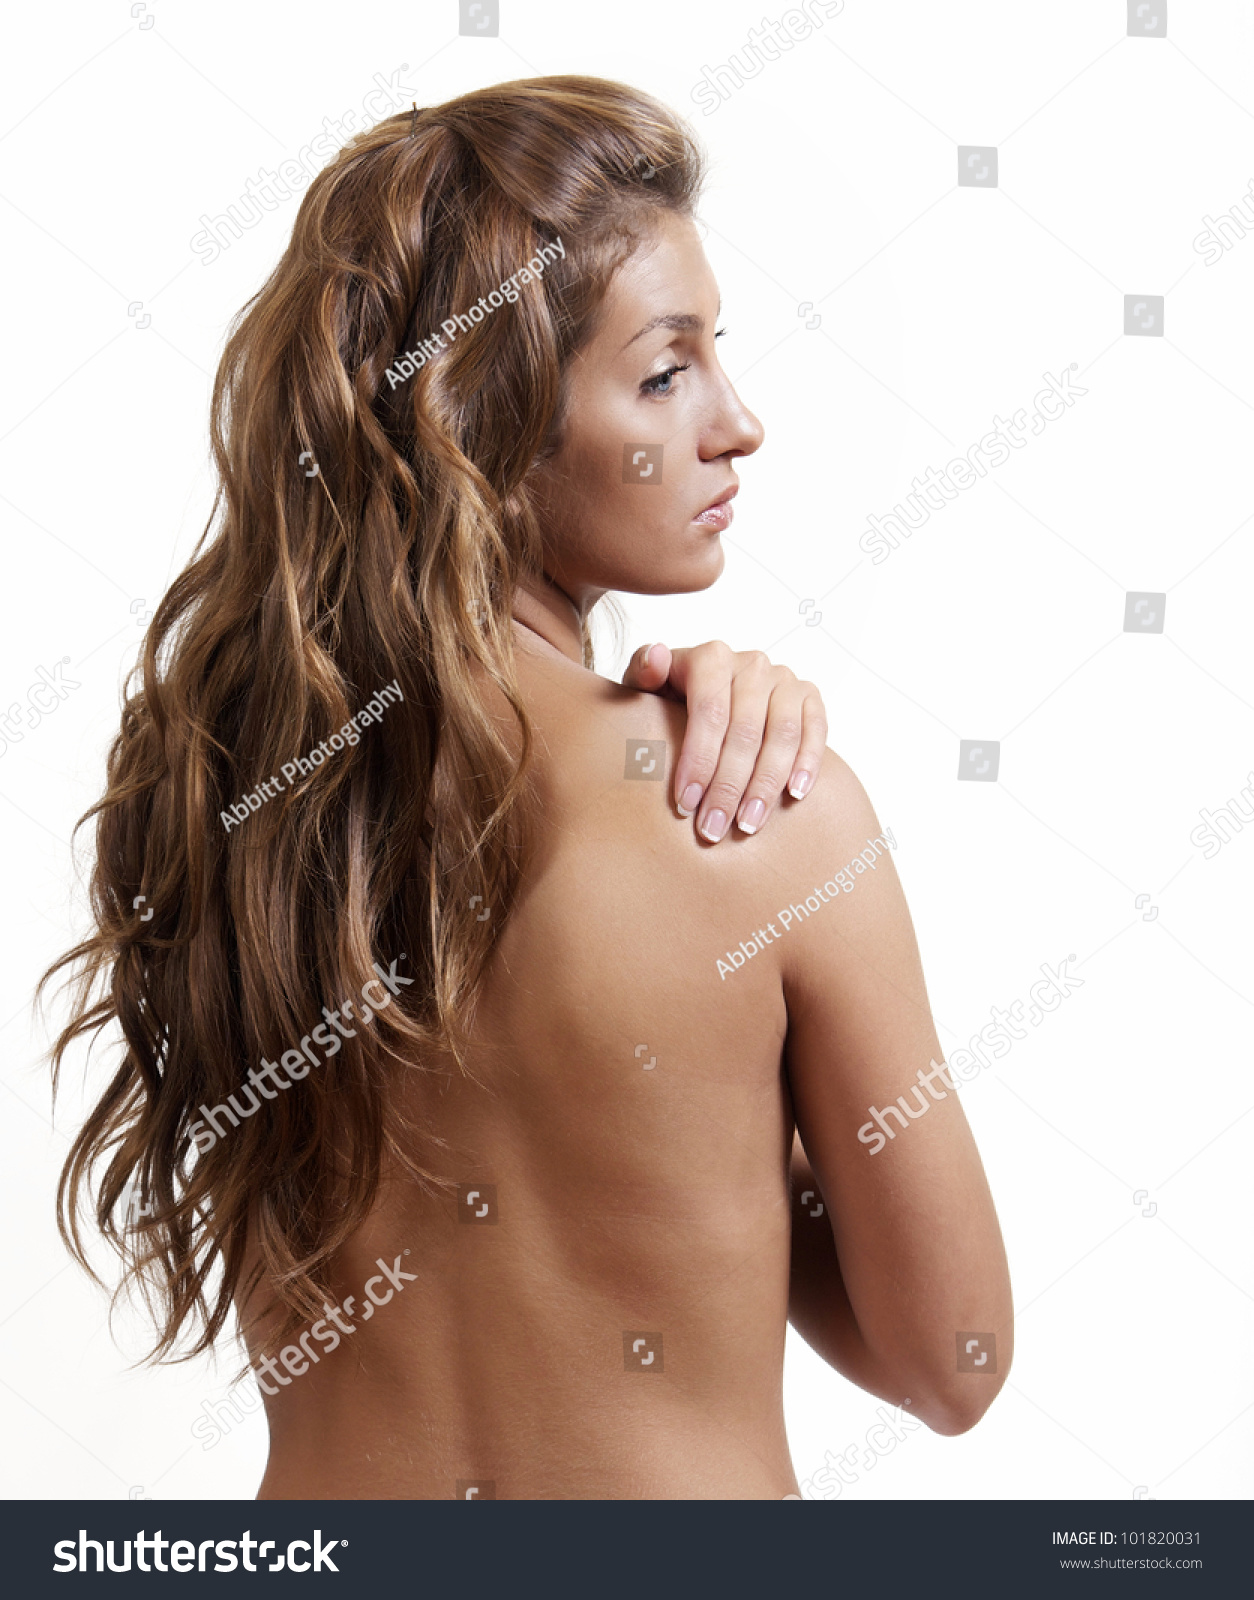 Her back is against the wall 7